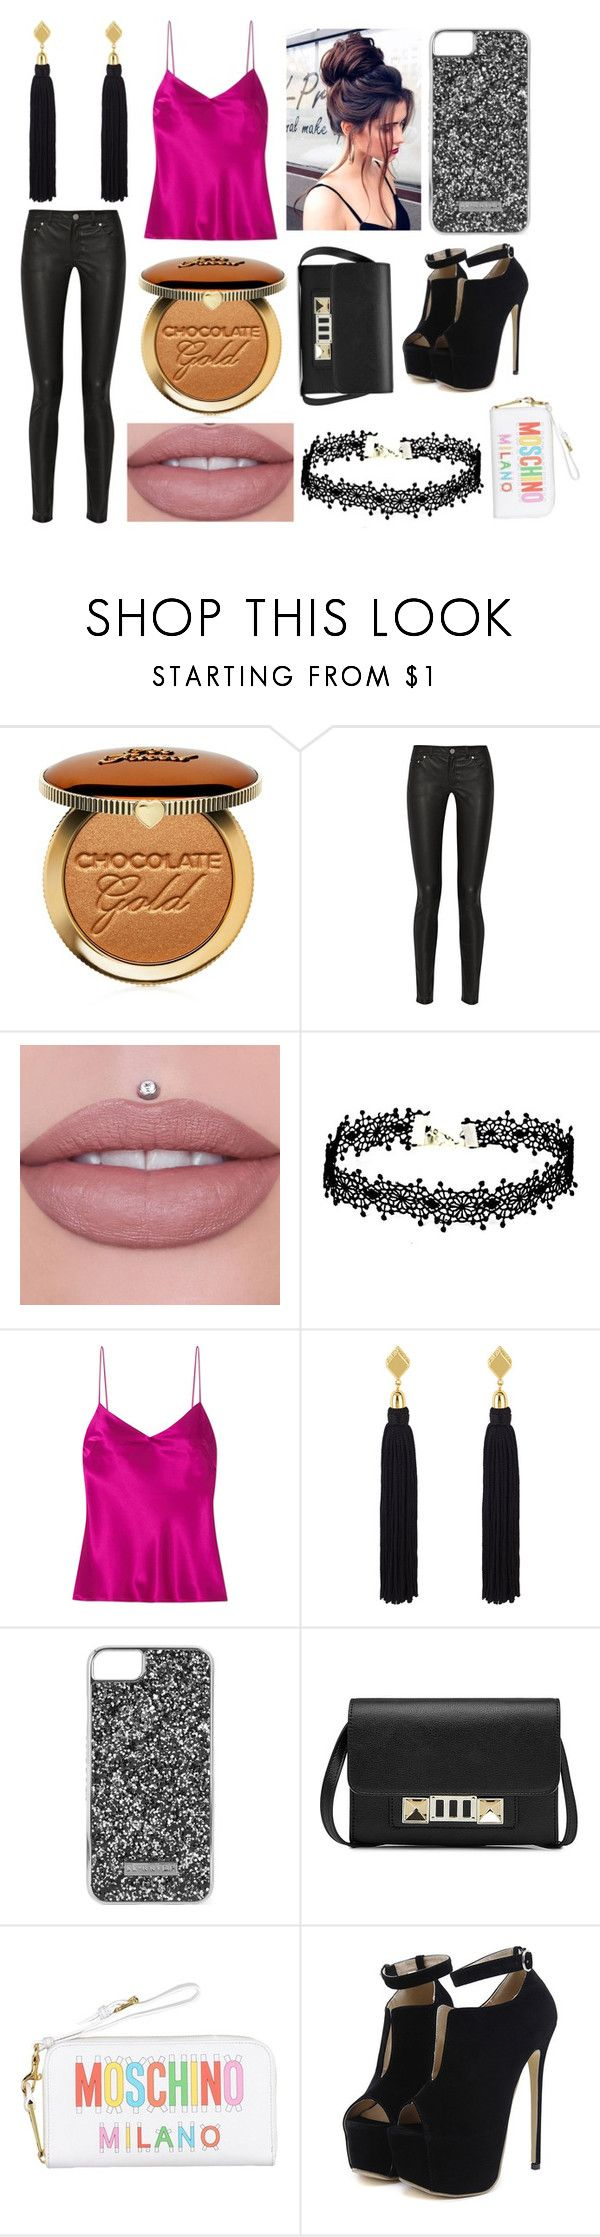 """Kyra from PERSONAL SHOPPER"" by hailey-smith-13 ❤ liked on Polyvore featuring Too Faced Cosmetics, Acne Studios, Galvan, Henri Bendel, Skinnydip, Proenza Schouler, Moschino and WithChic"